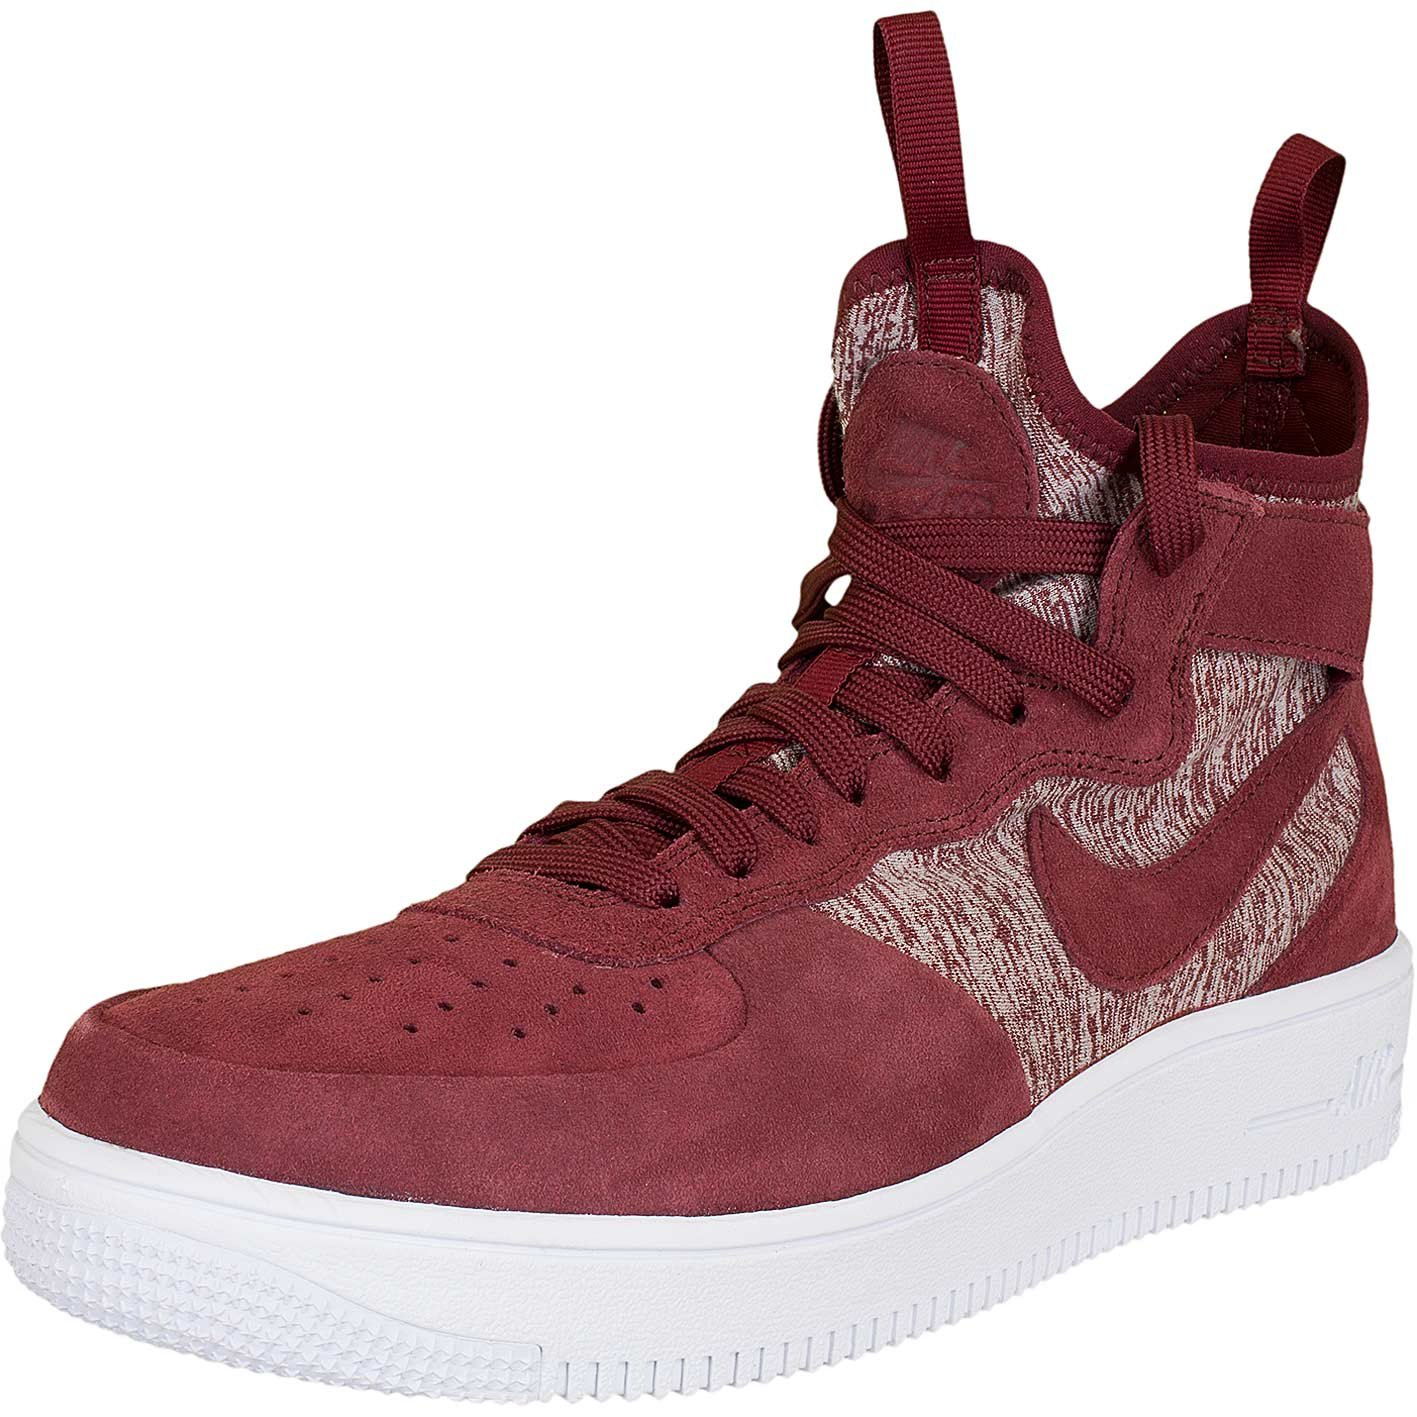 Nike Air Force 1 UF Mid Premium Turnschuhe Trainer